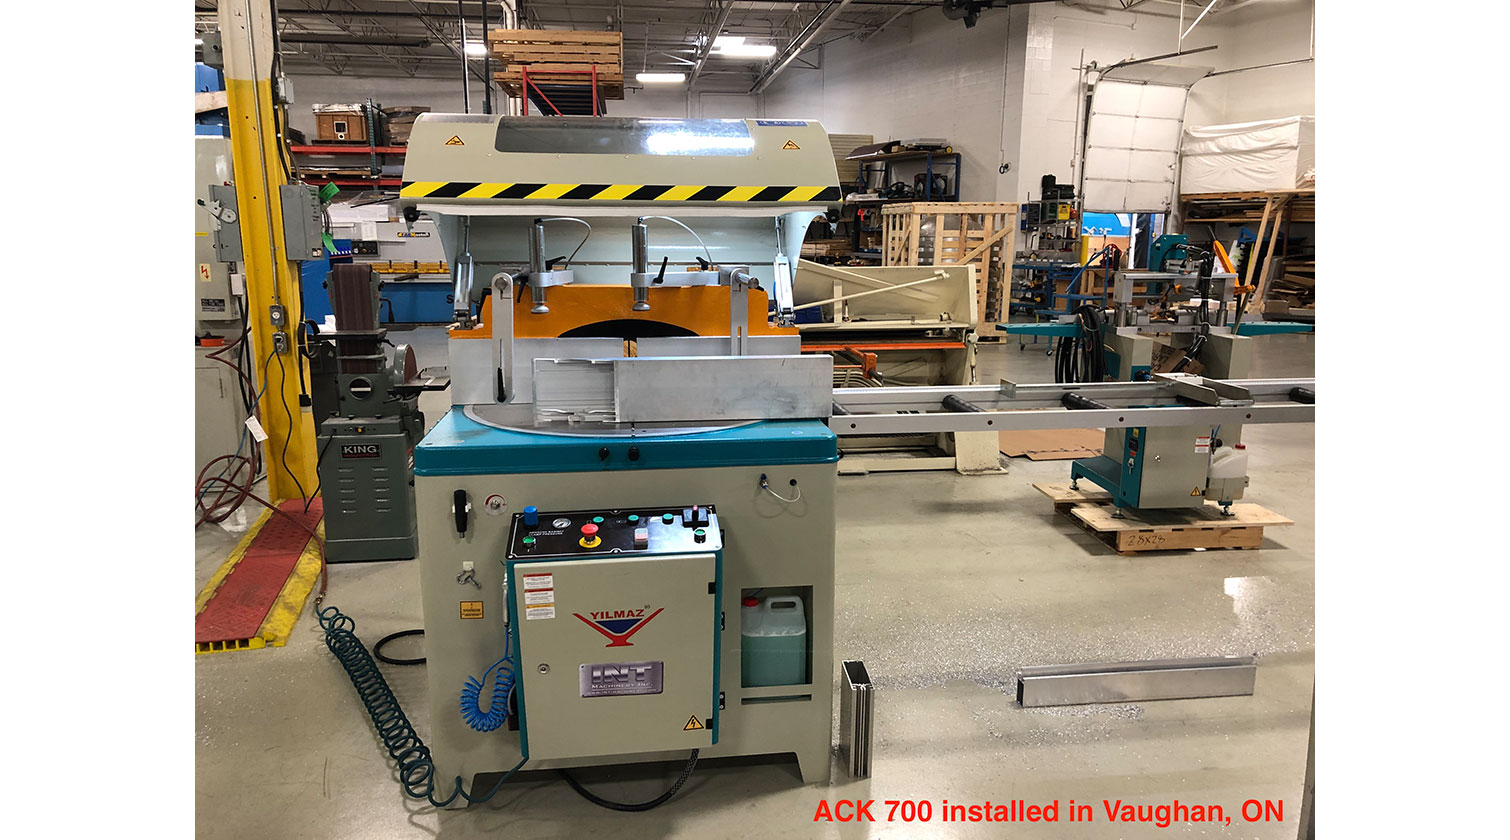 INT aluminum up cut saw Yilmaz ACK 700 installed in Vaughan